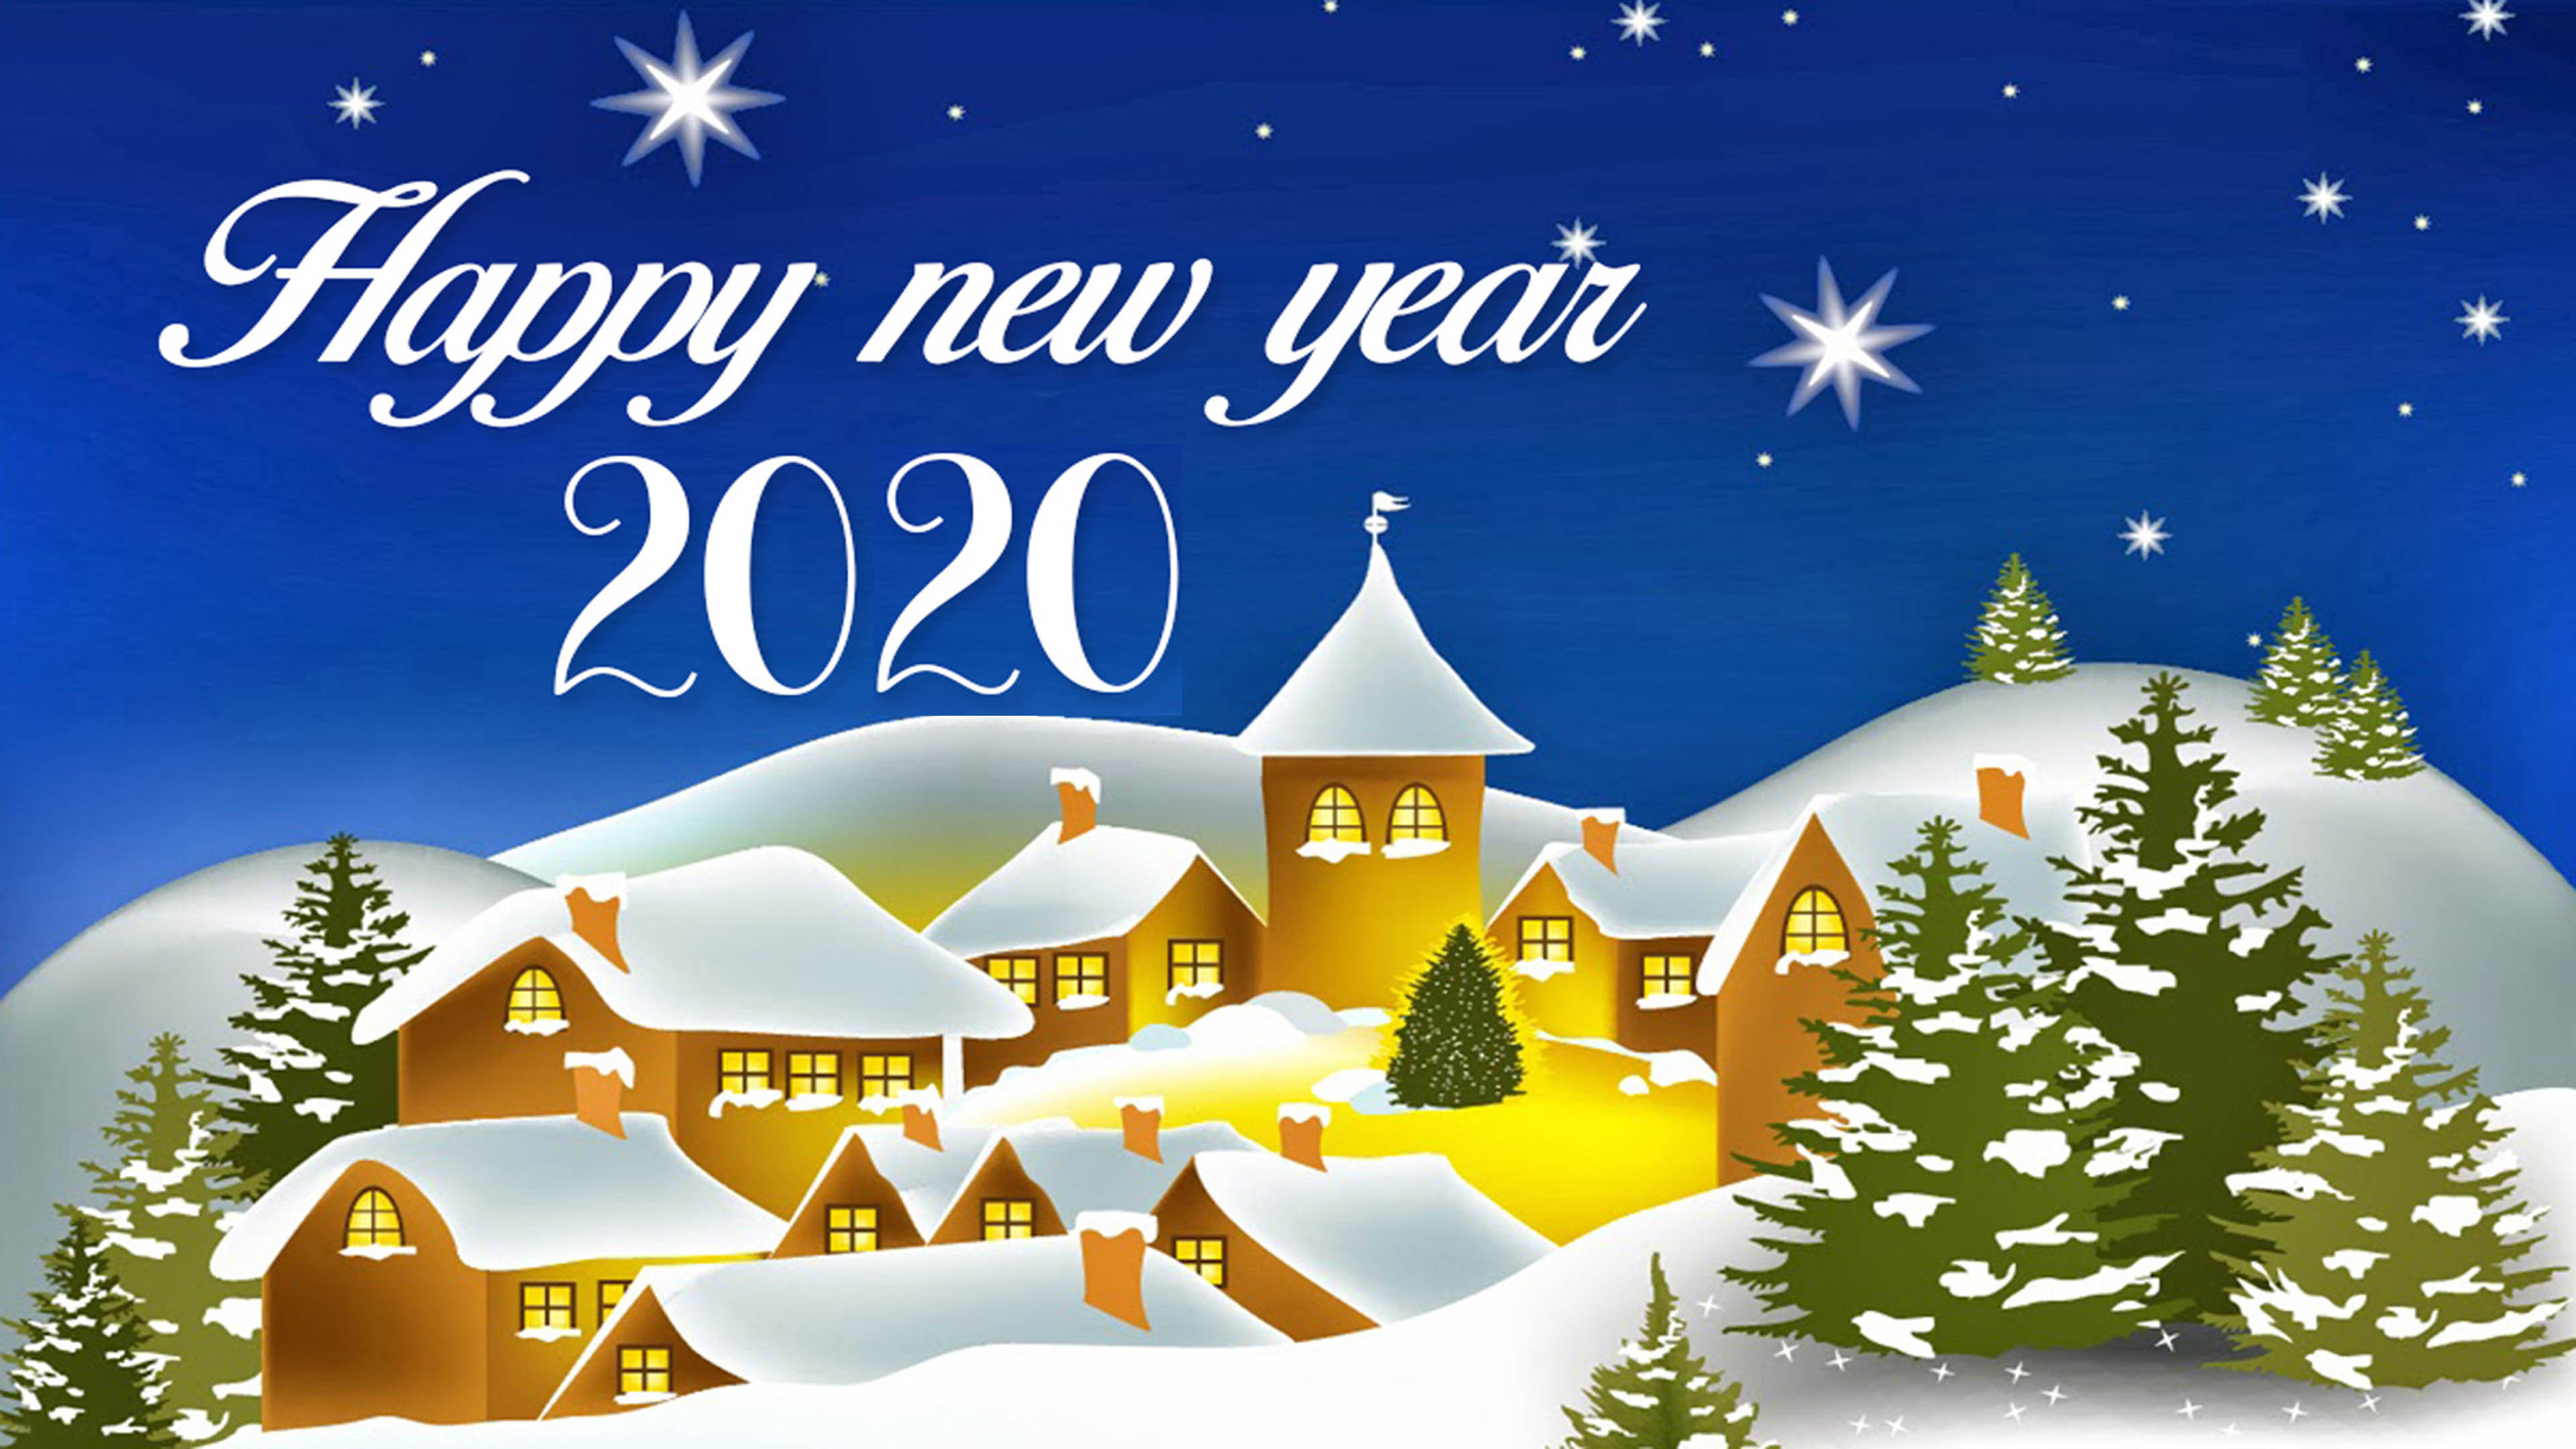 Happy New Year 2020 Best Wishes For Christmas Greetings Card Hd 3840x2160